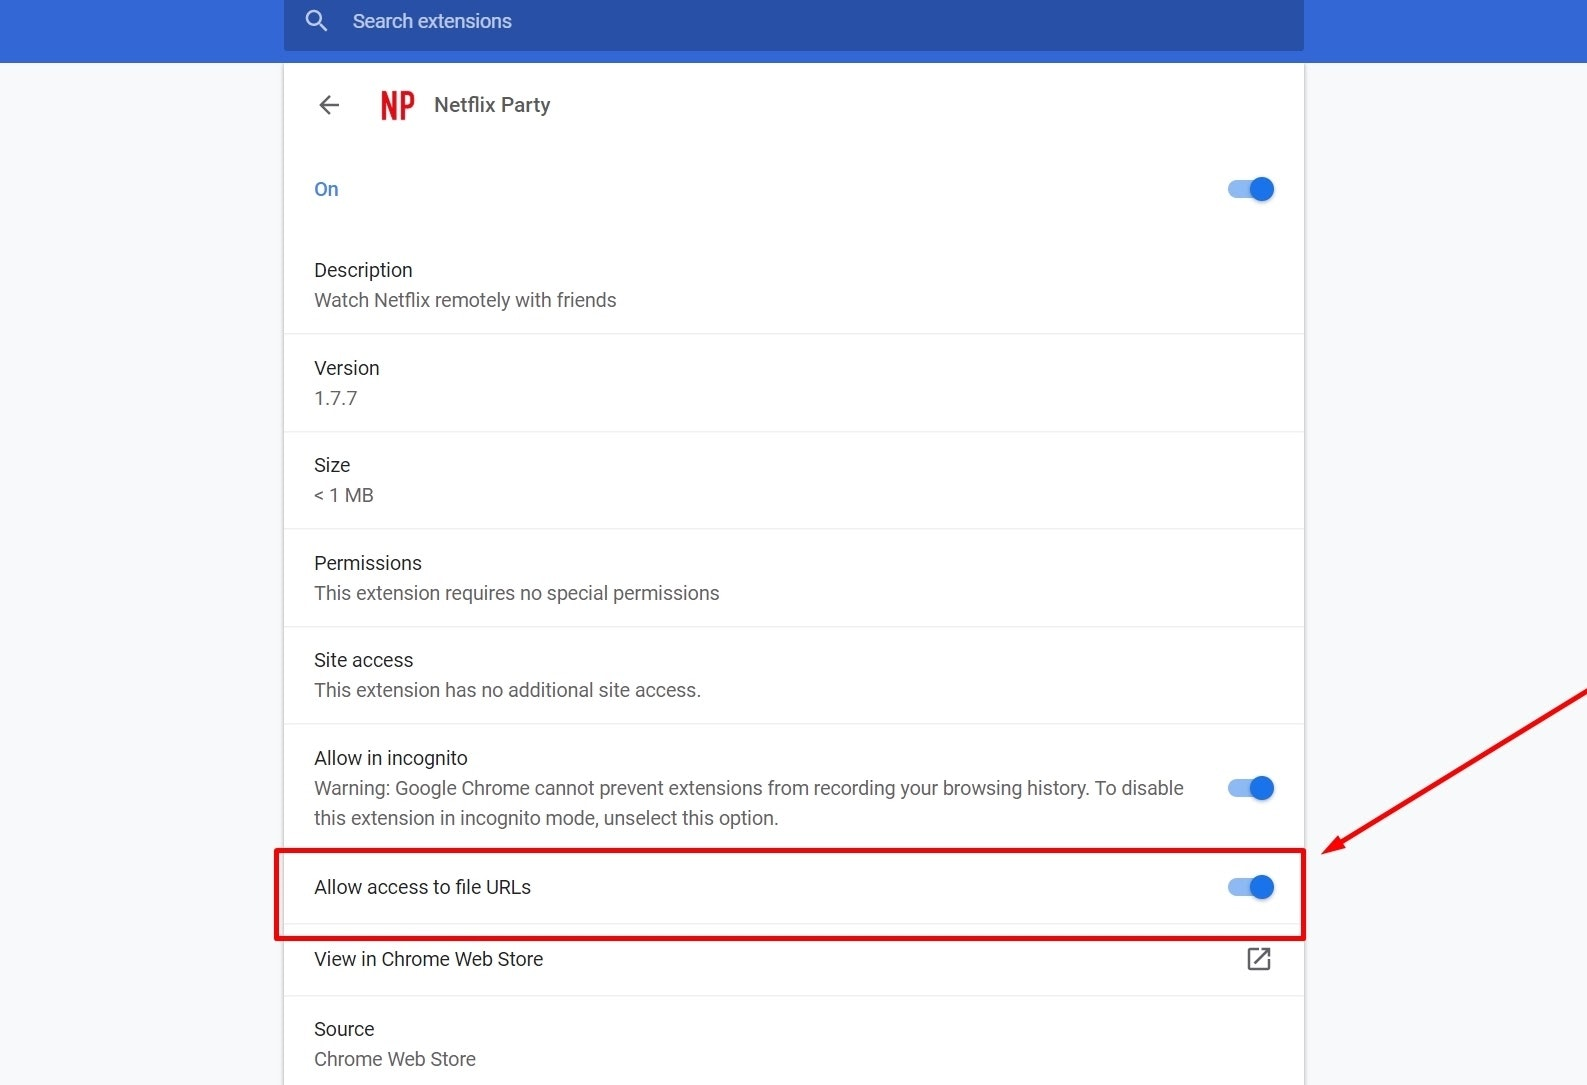 Netflix Party manage extension